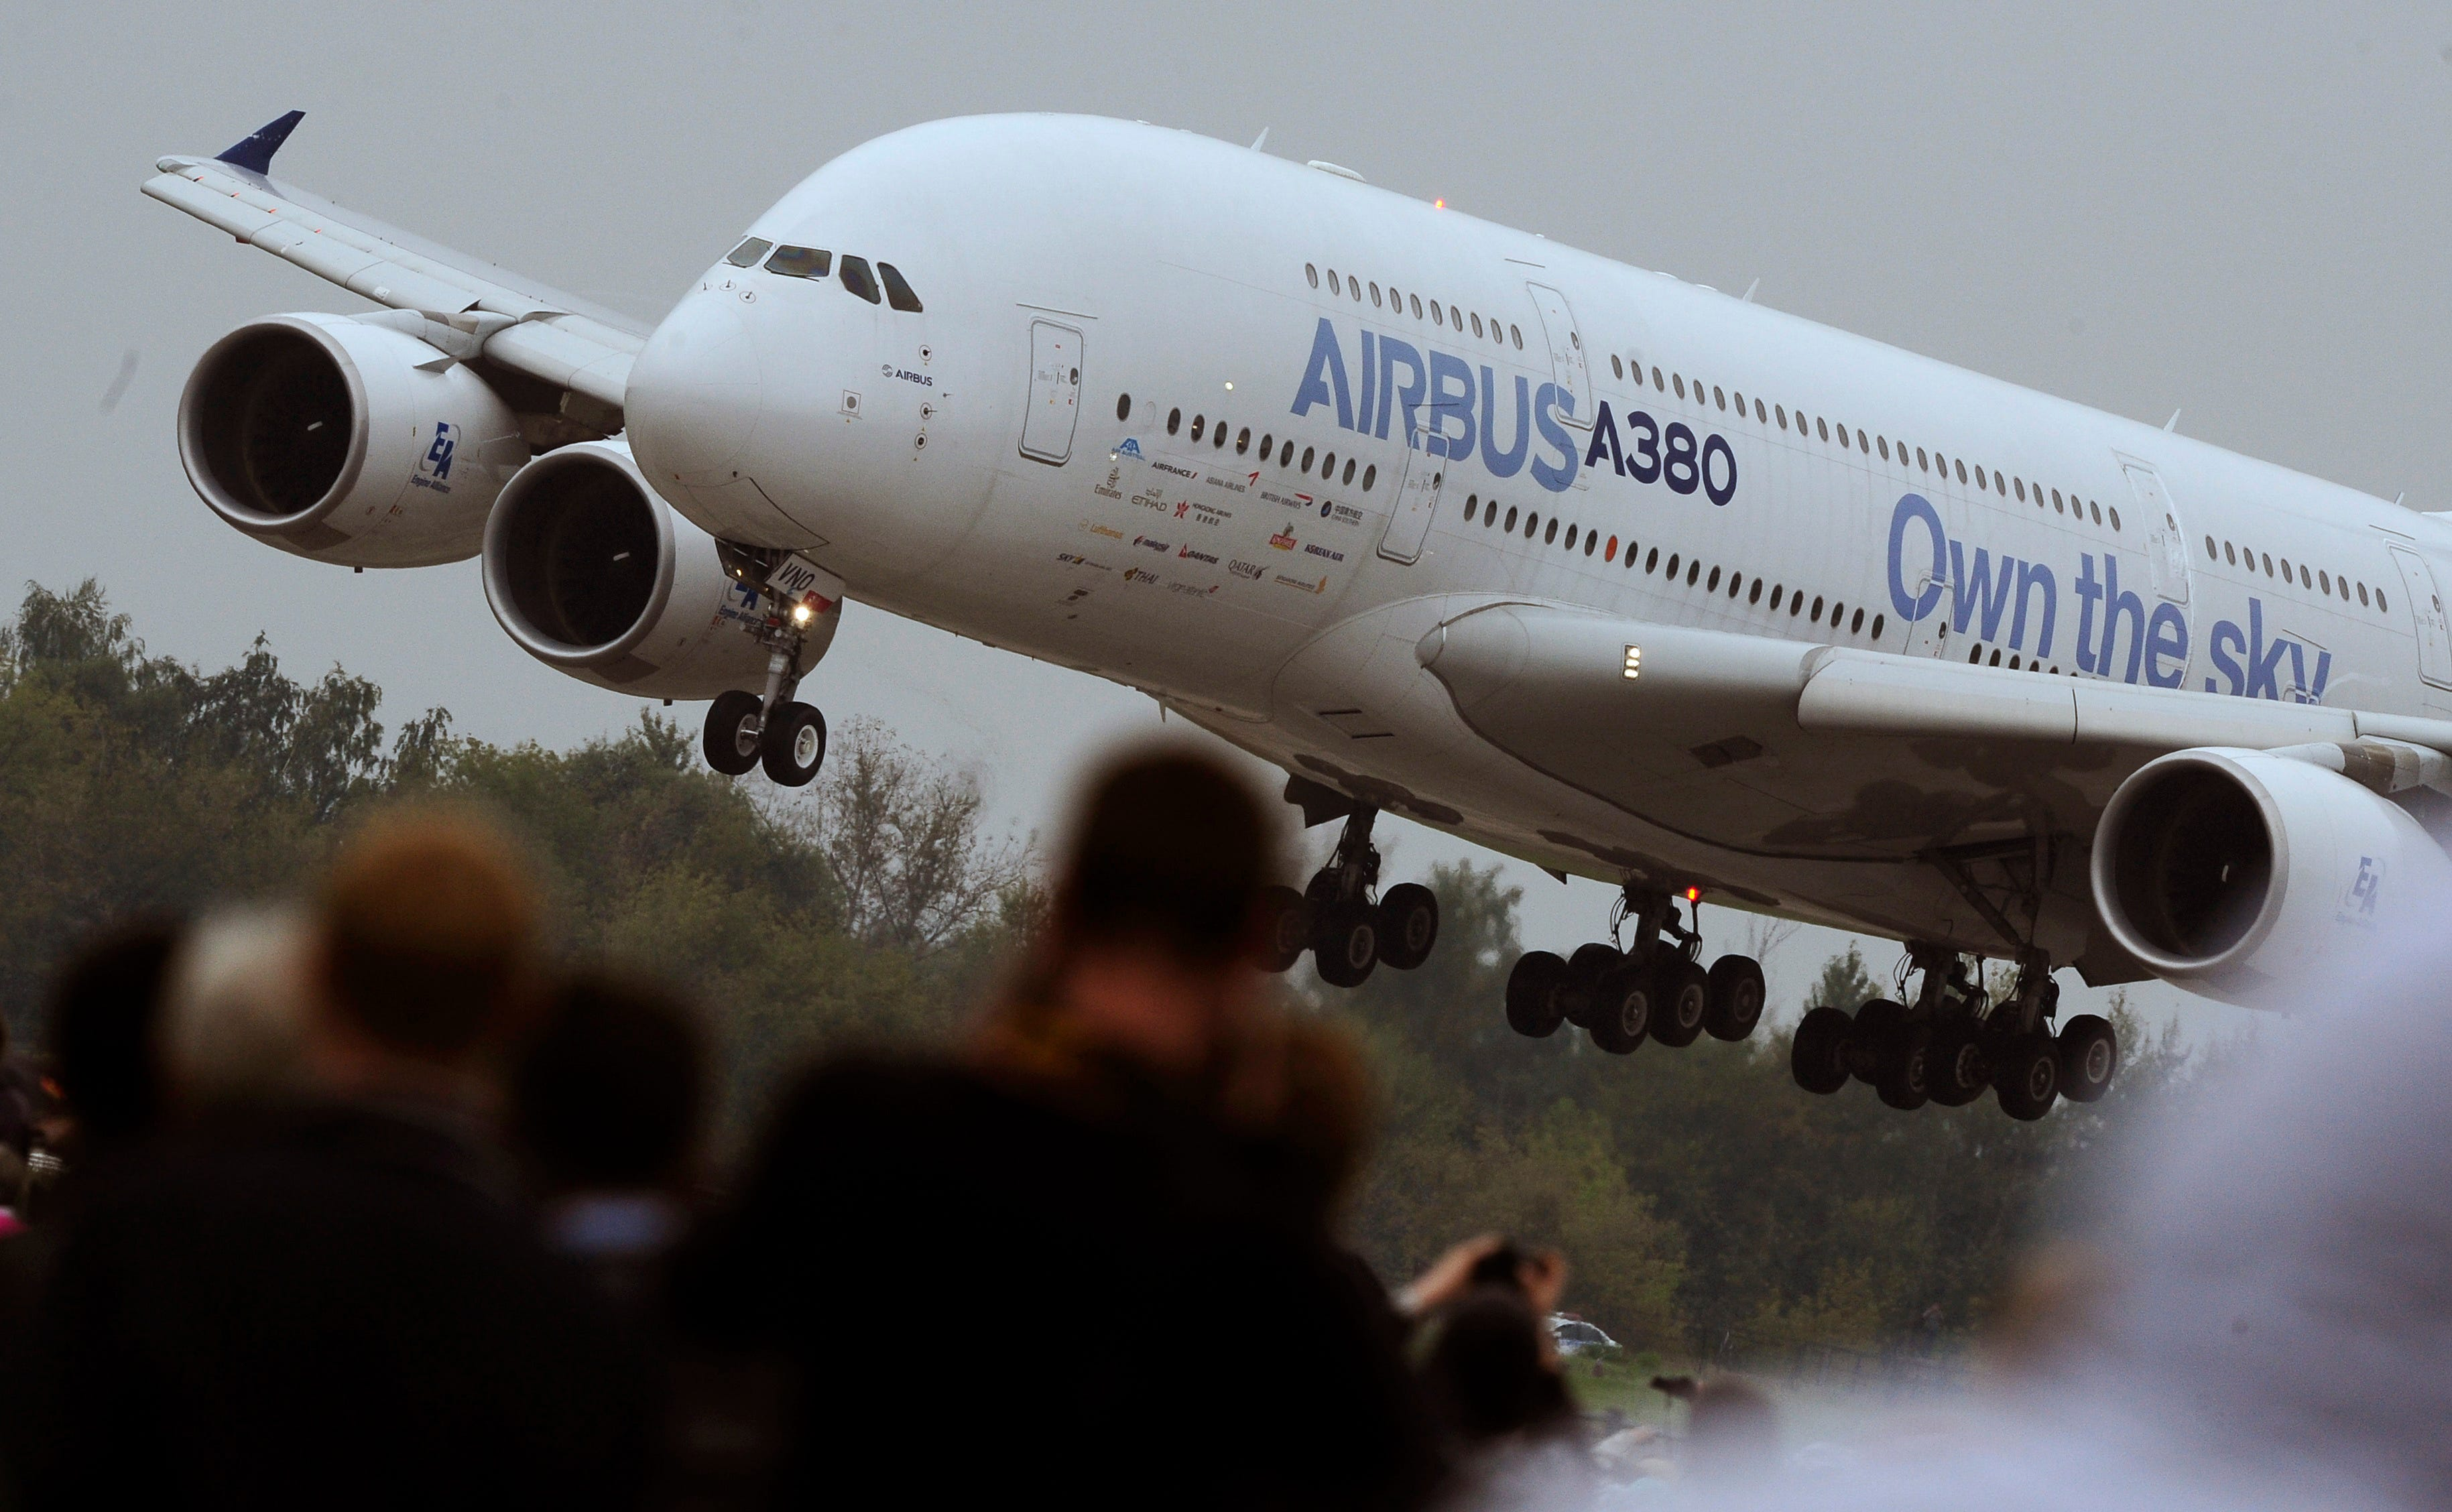 ����z-a:+�_at 652 seats, transaero\'s a380s could top all